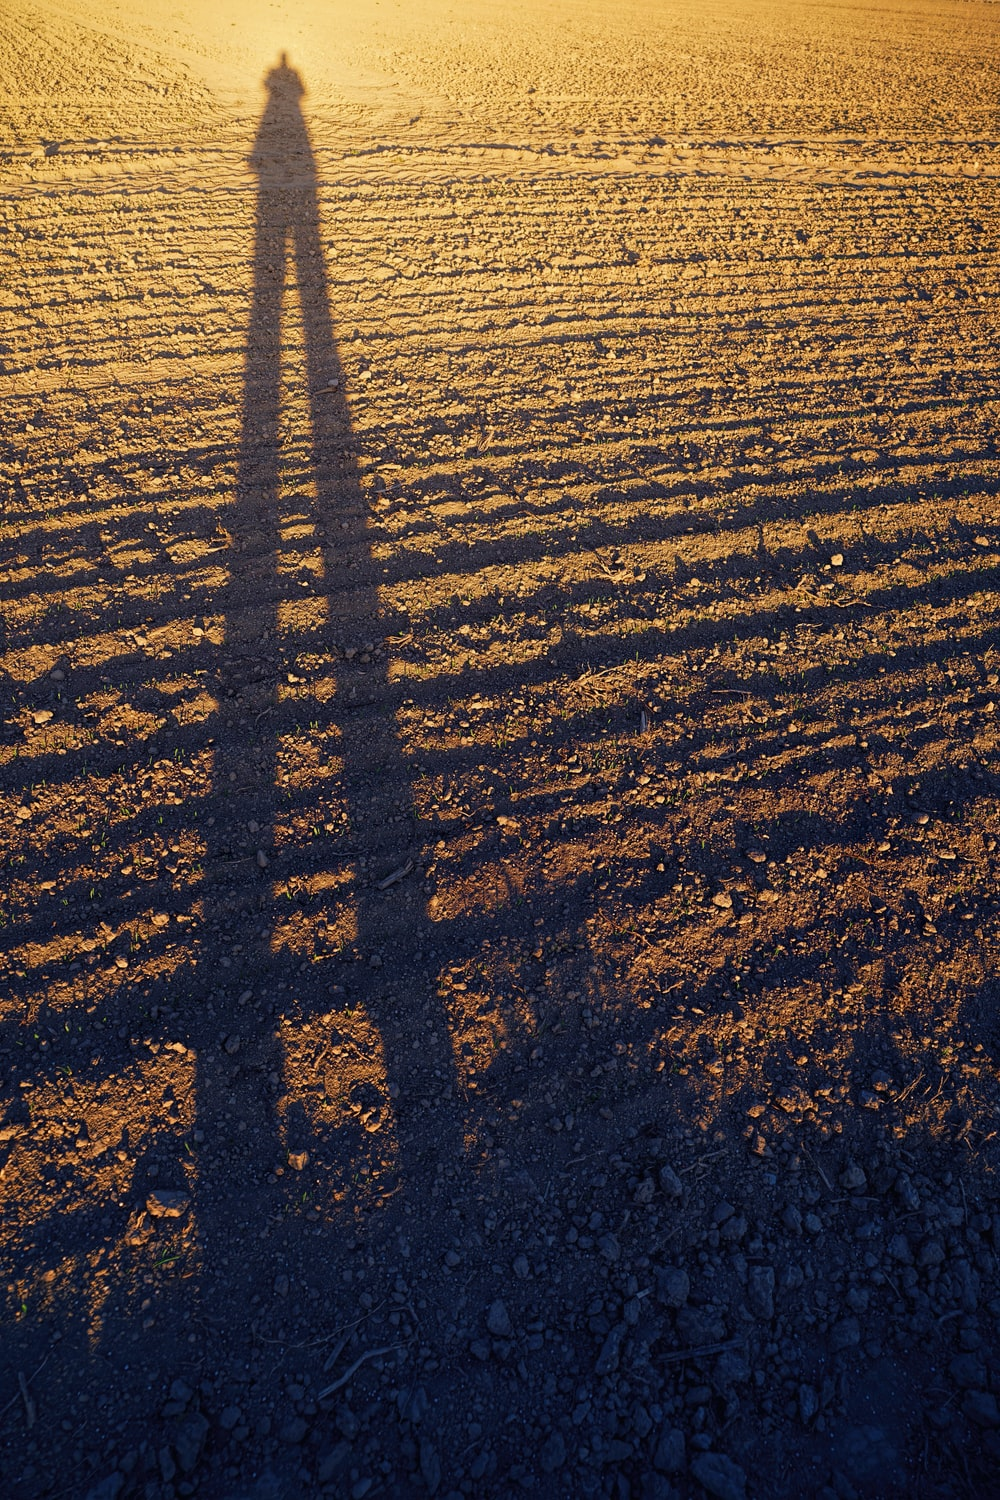 person standing on dirt field during day